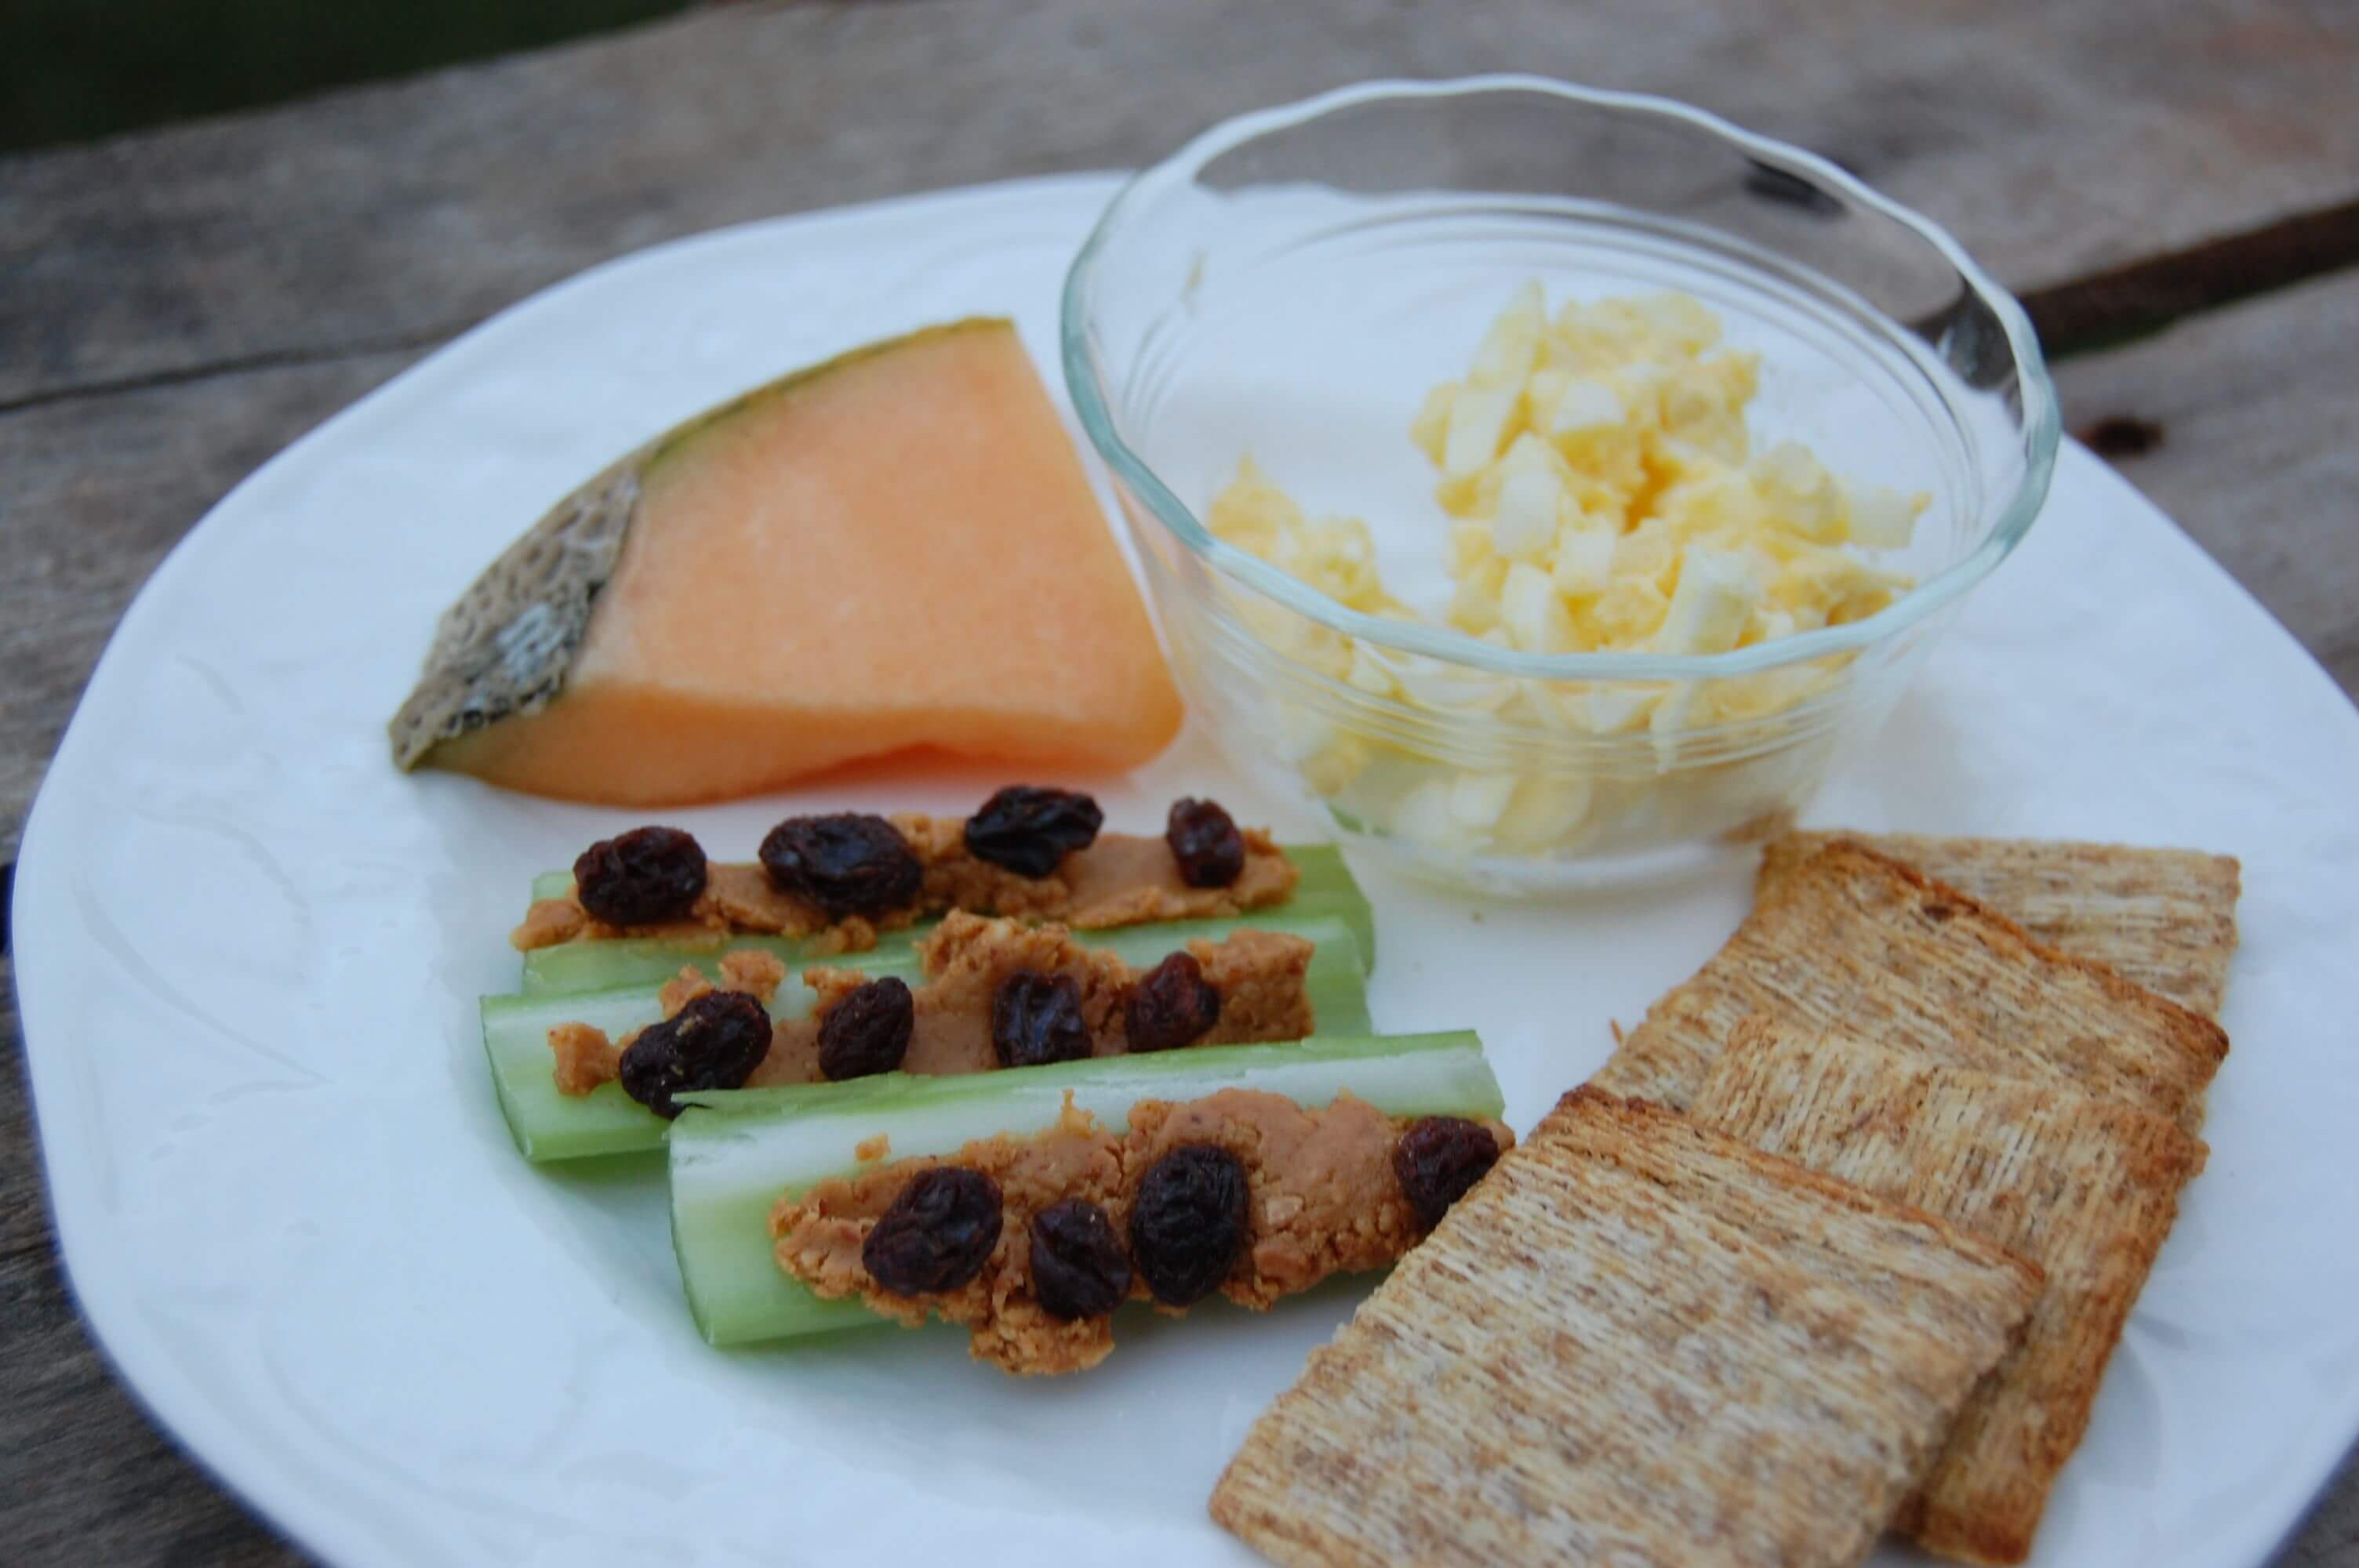 A plate of egg salad, crackers, celery with peanut butter & raisins, and a slice of cantaloupe.